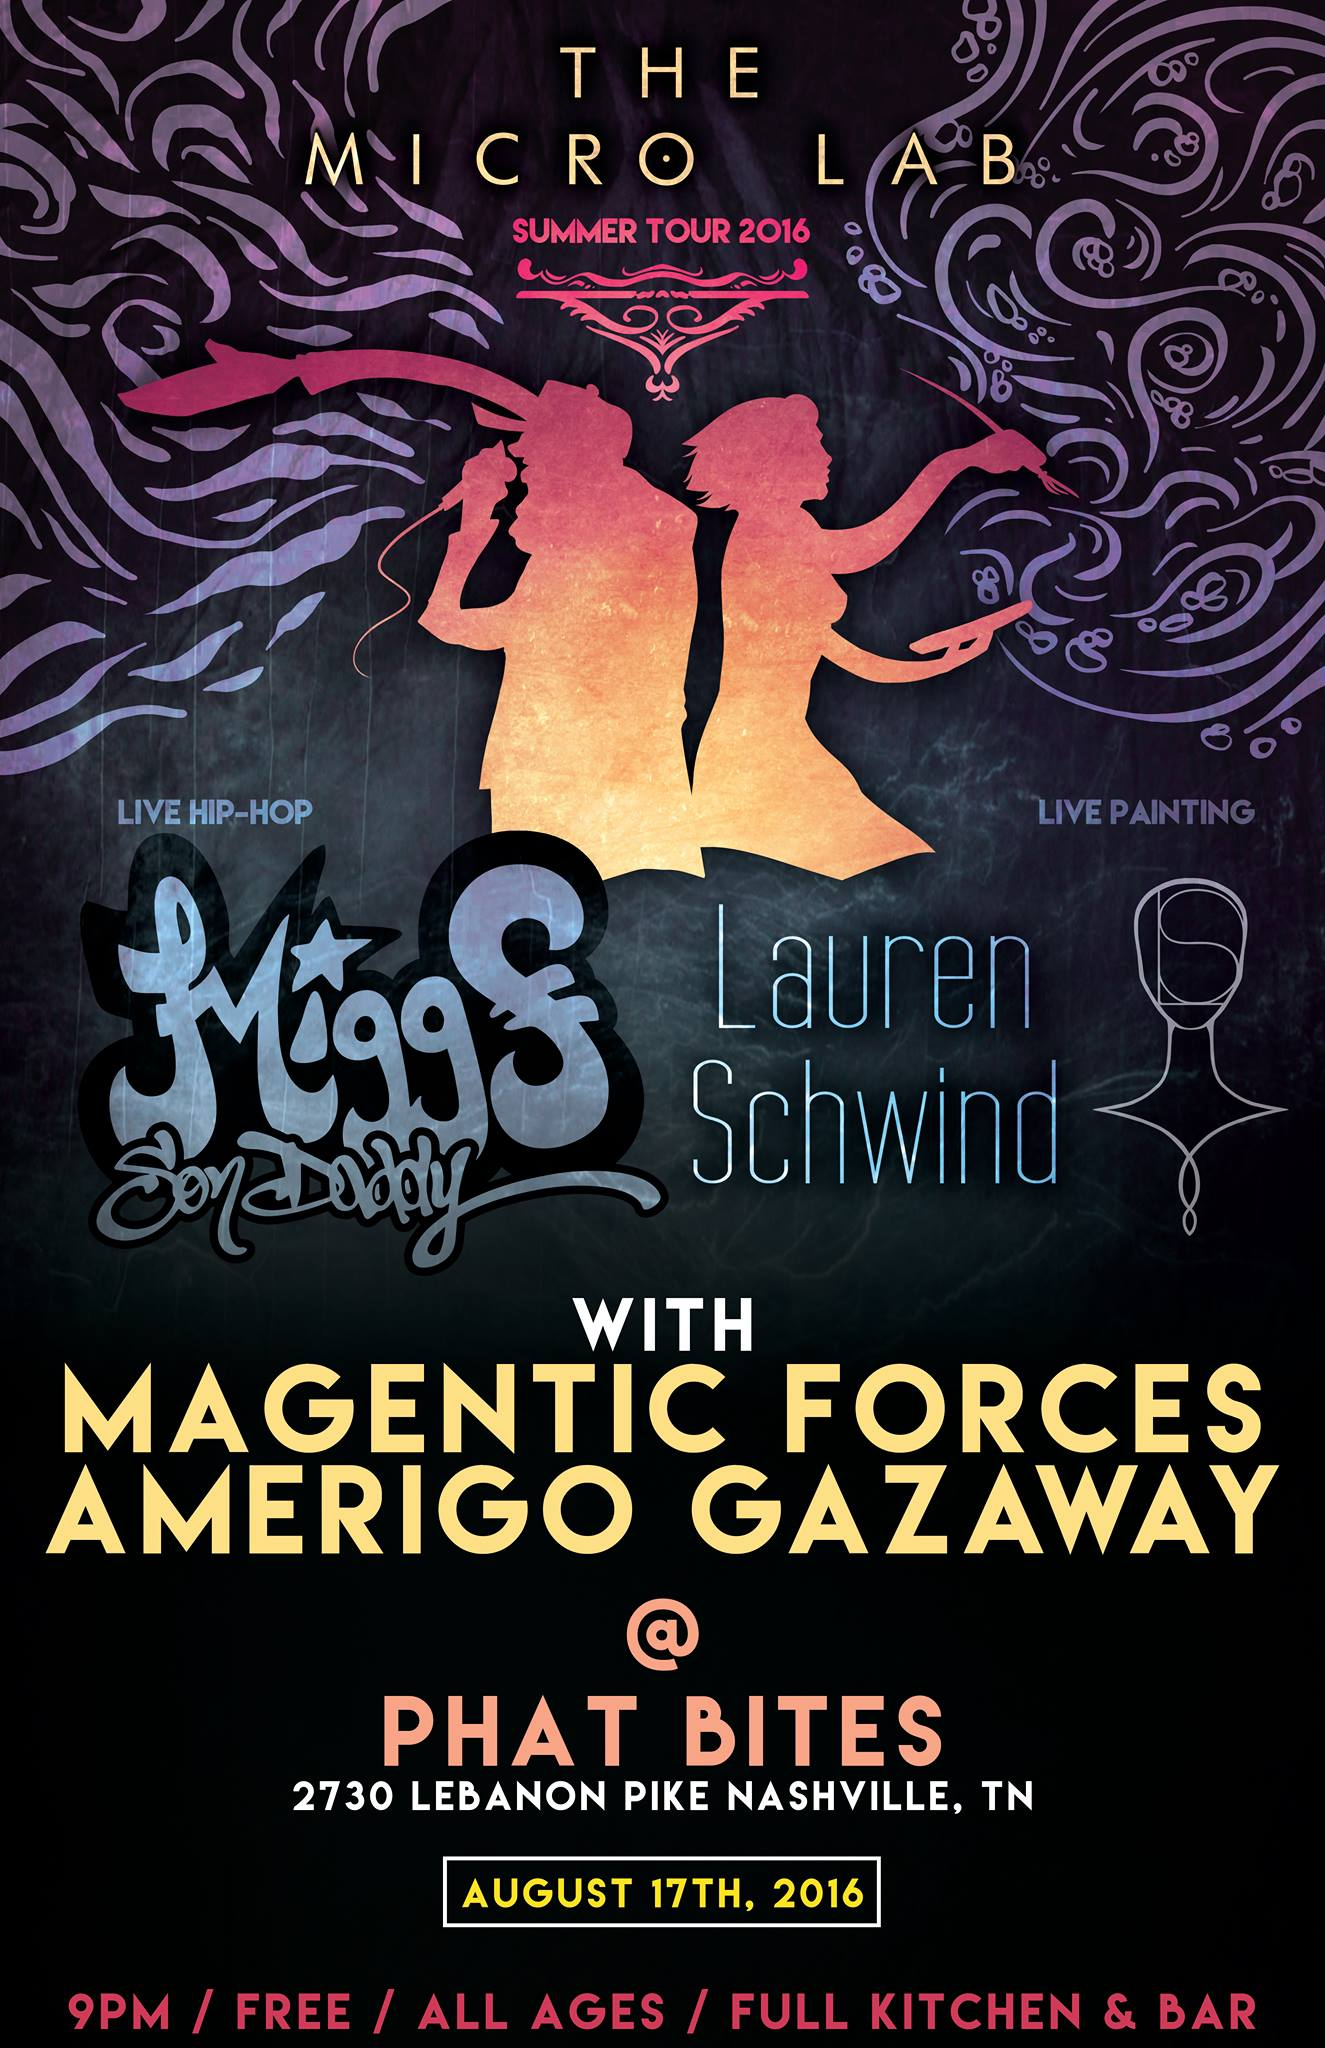 The Micro Lab Tour w/ Magnetic Forces & Amerigo Gazaway at Phat Bites